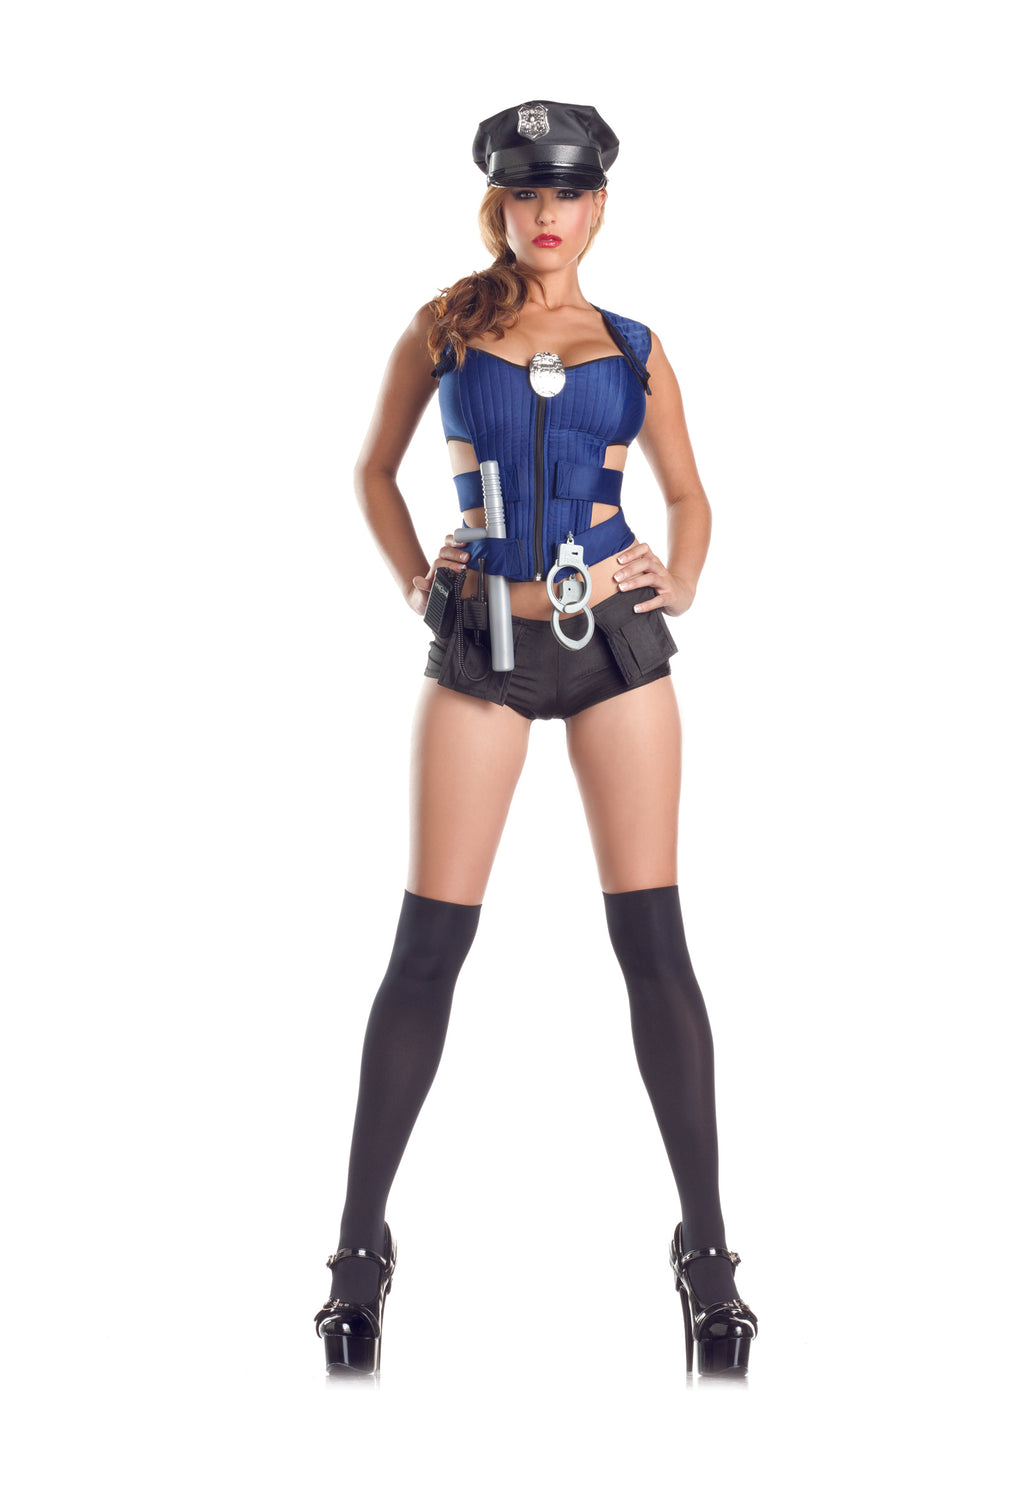 Adult-Women's-8-Piece-Police-Officer-Cop-Blue-Vest-&-Booty-Shorts-Halloween-Party-Costume